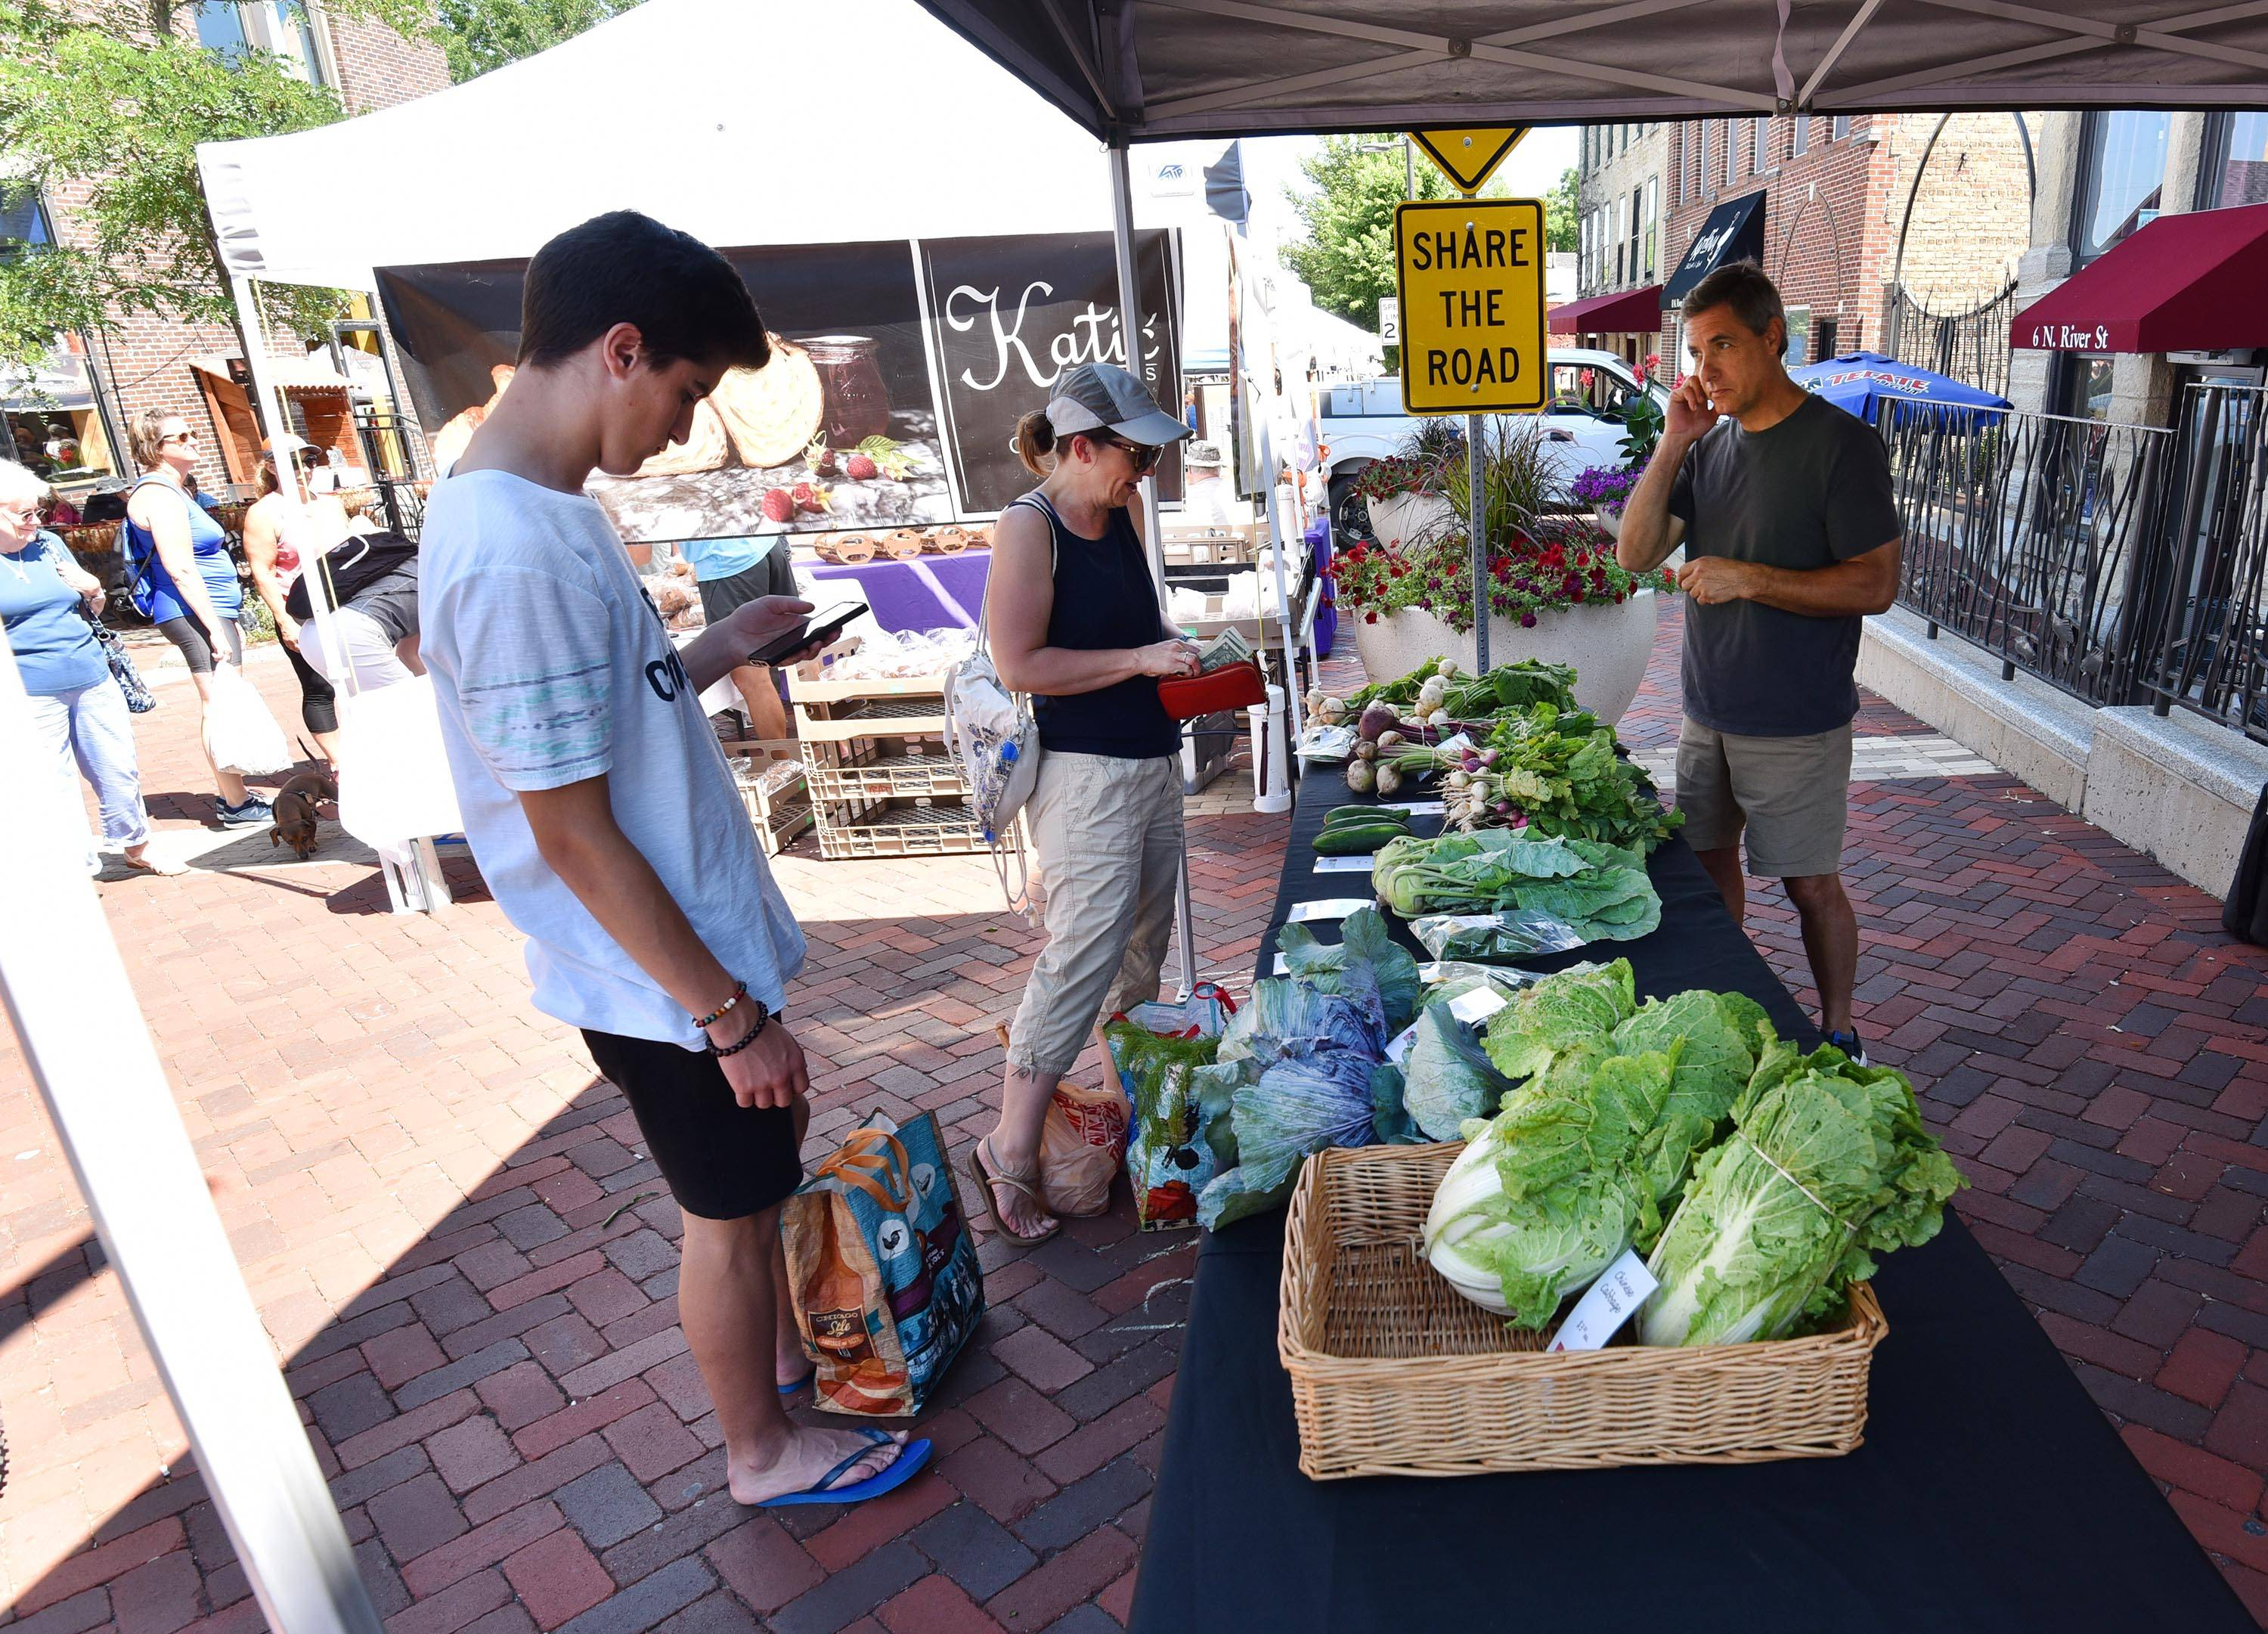 Mike Petersdorf, of Muirhead Farms of Hampshire, talks with customers at the farmers market on North River Street in Batavia Saturday morning. The event is held every Saturday, 8 a.m. to noon, through Oct. 27.